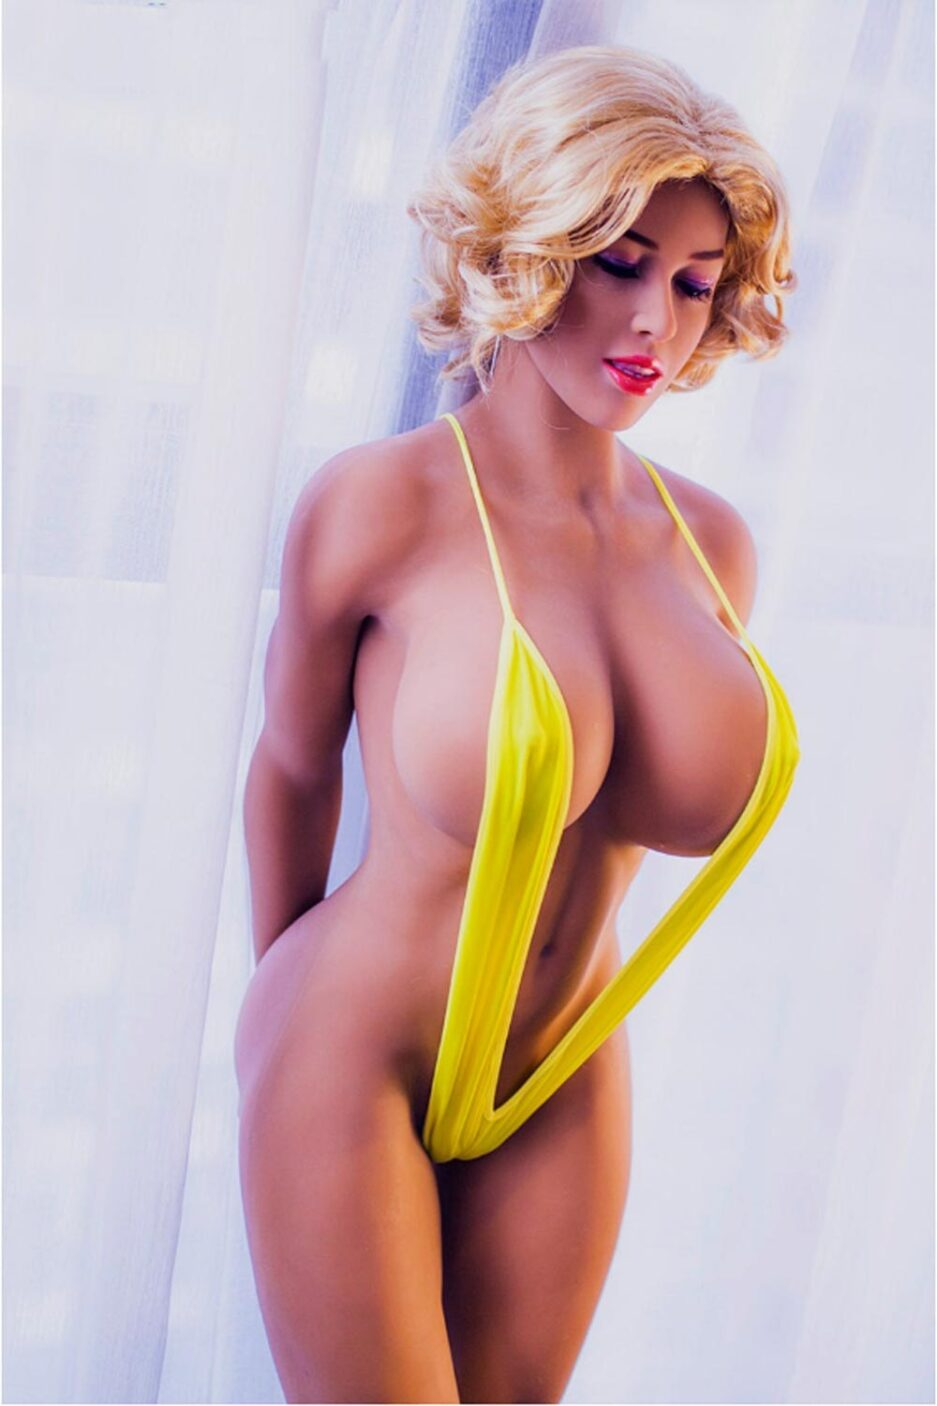 Big breasted sex doll in yellow suspenders